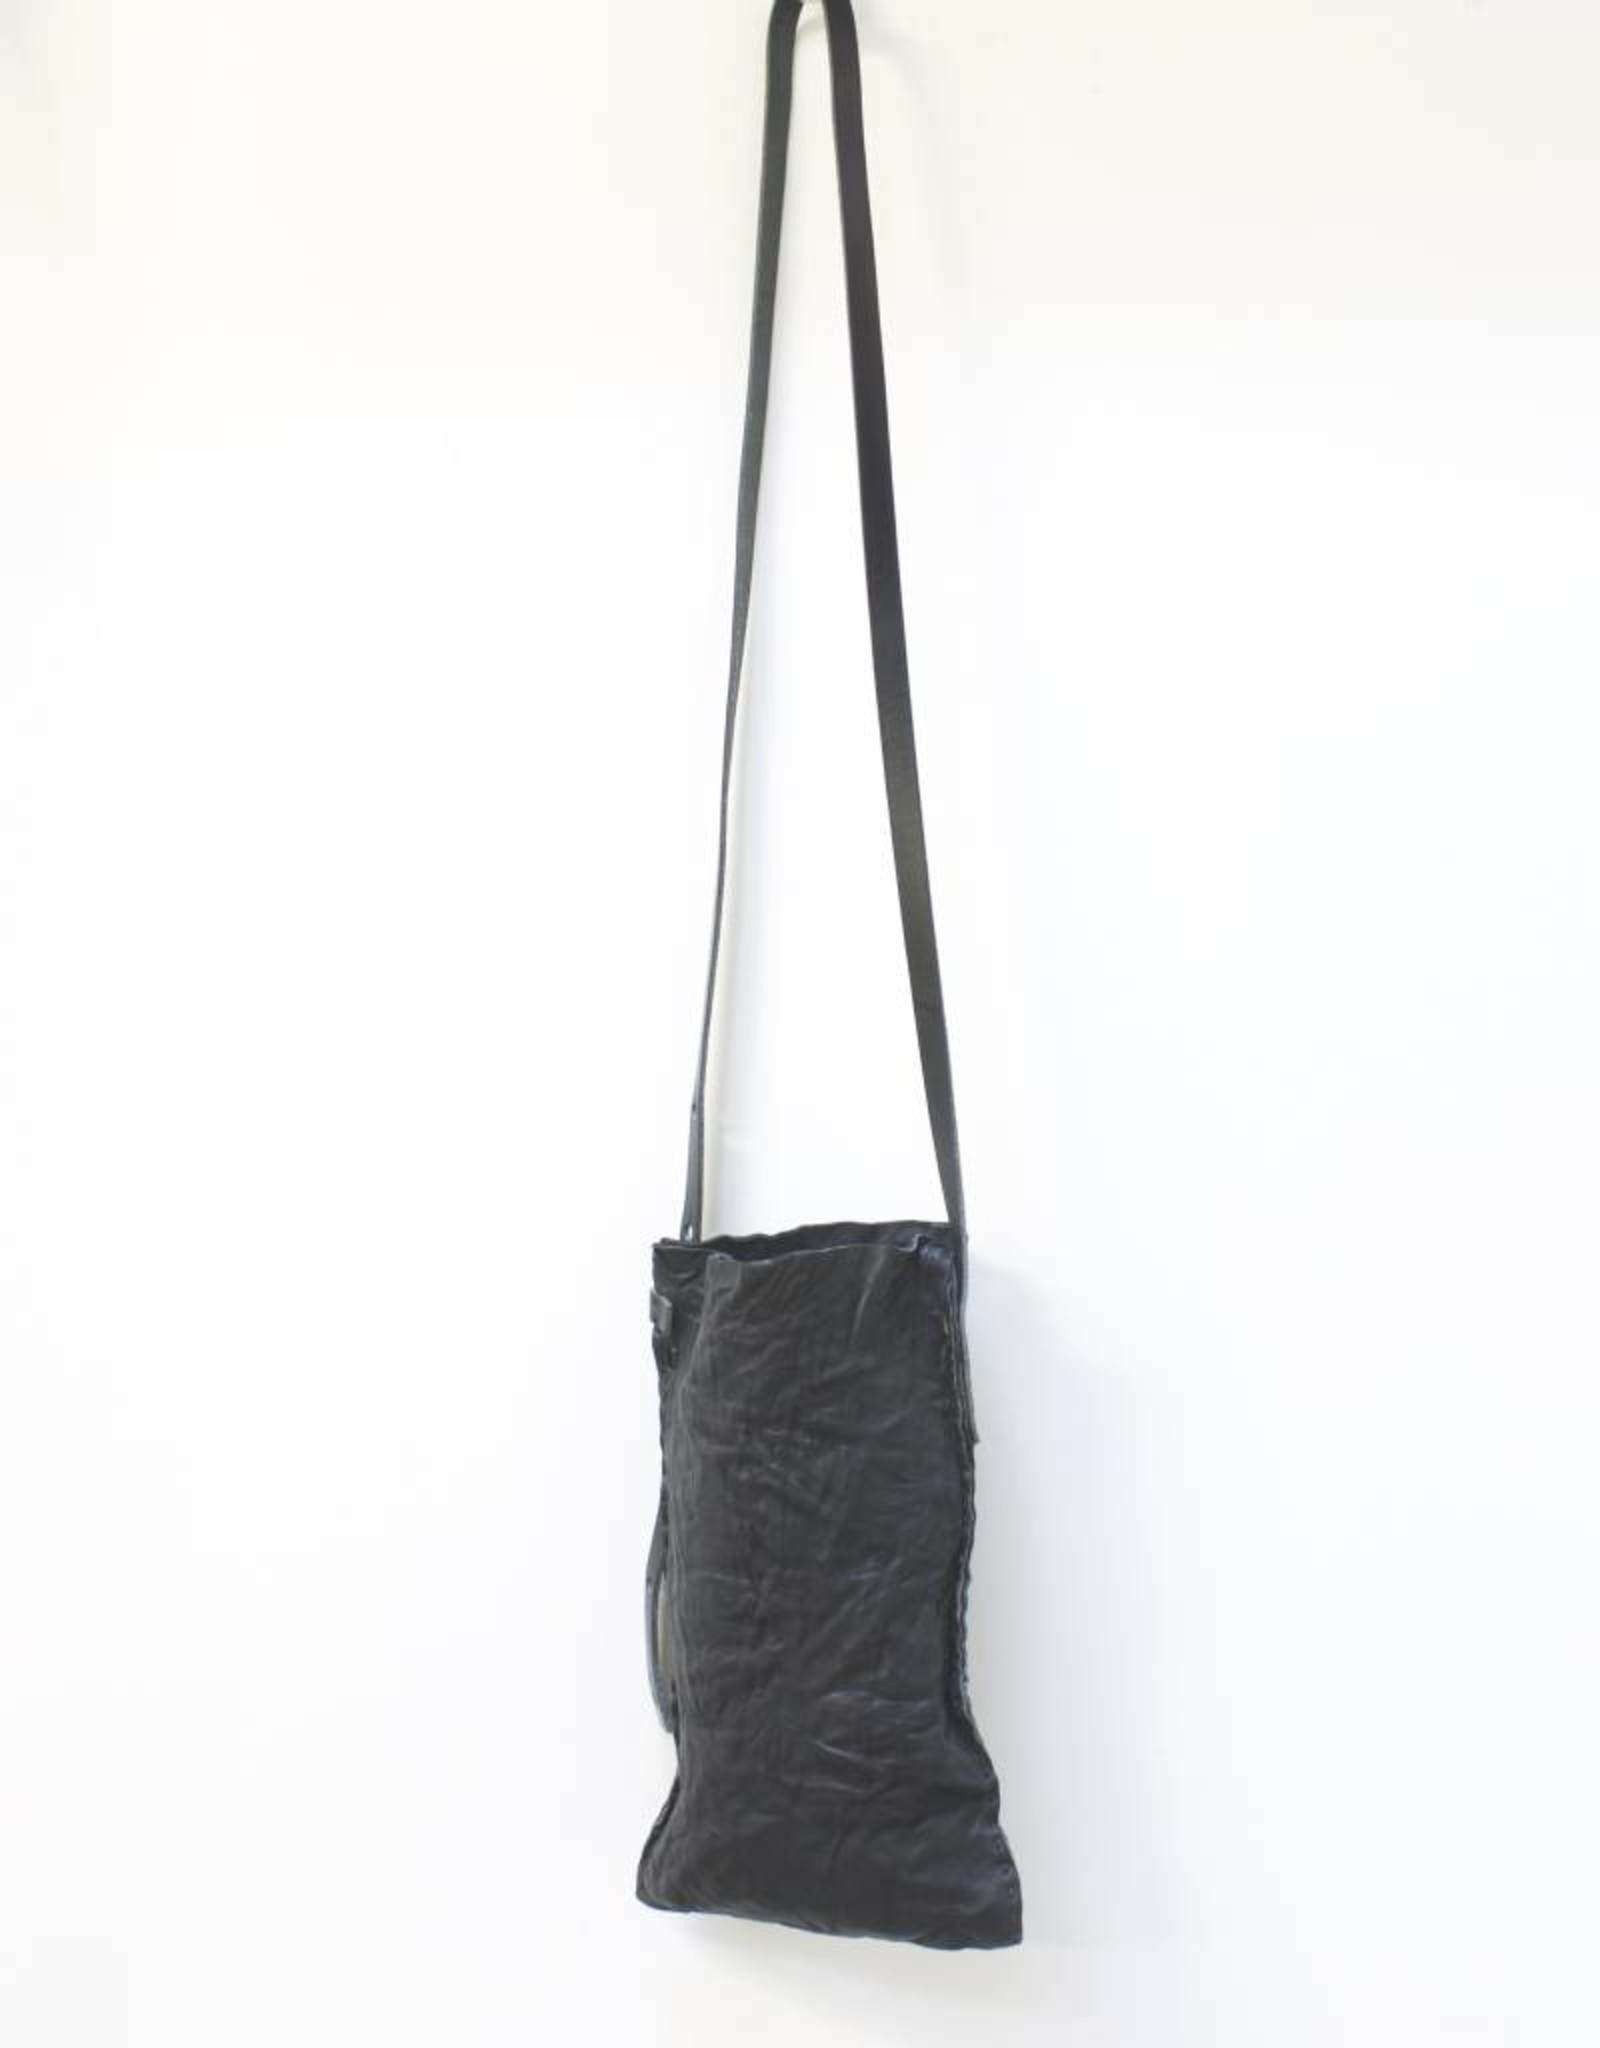 Engso Hand Crafted Long Cross-Body Leather Bag - Black